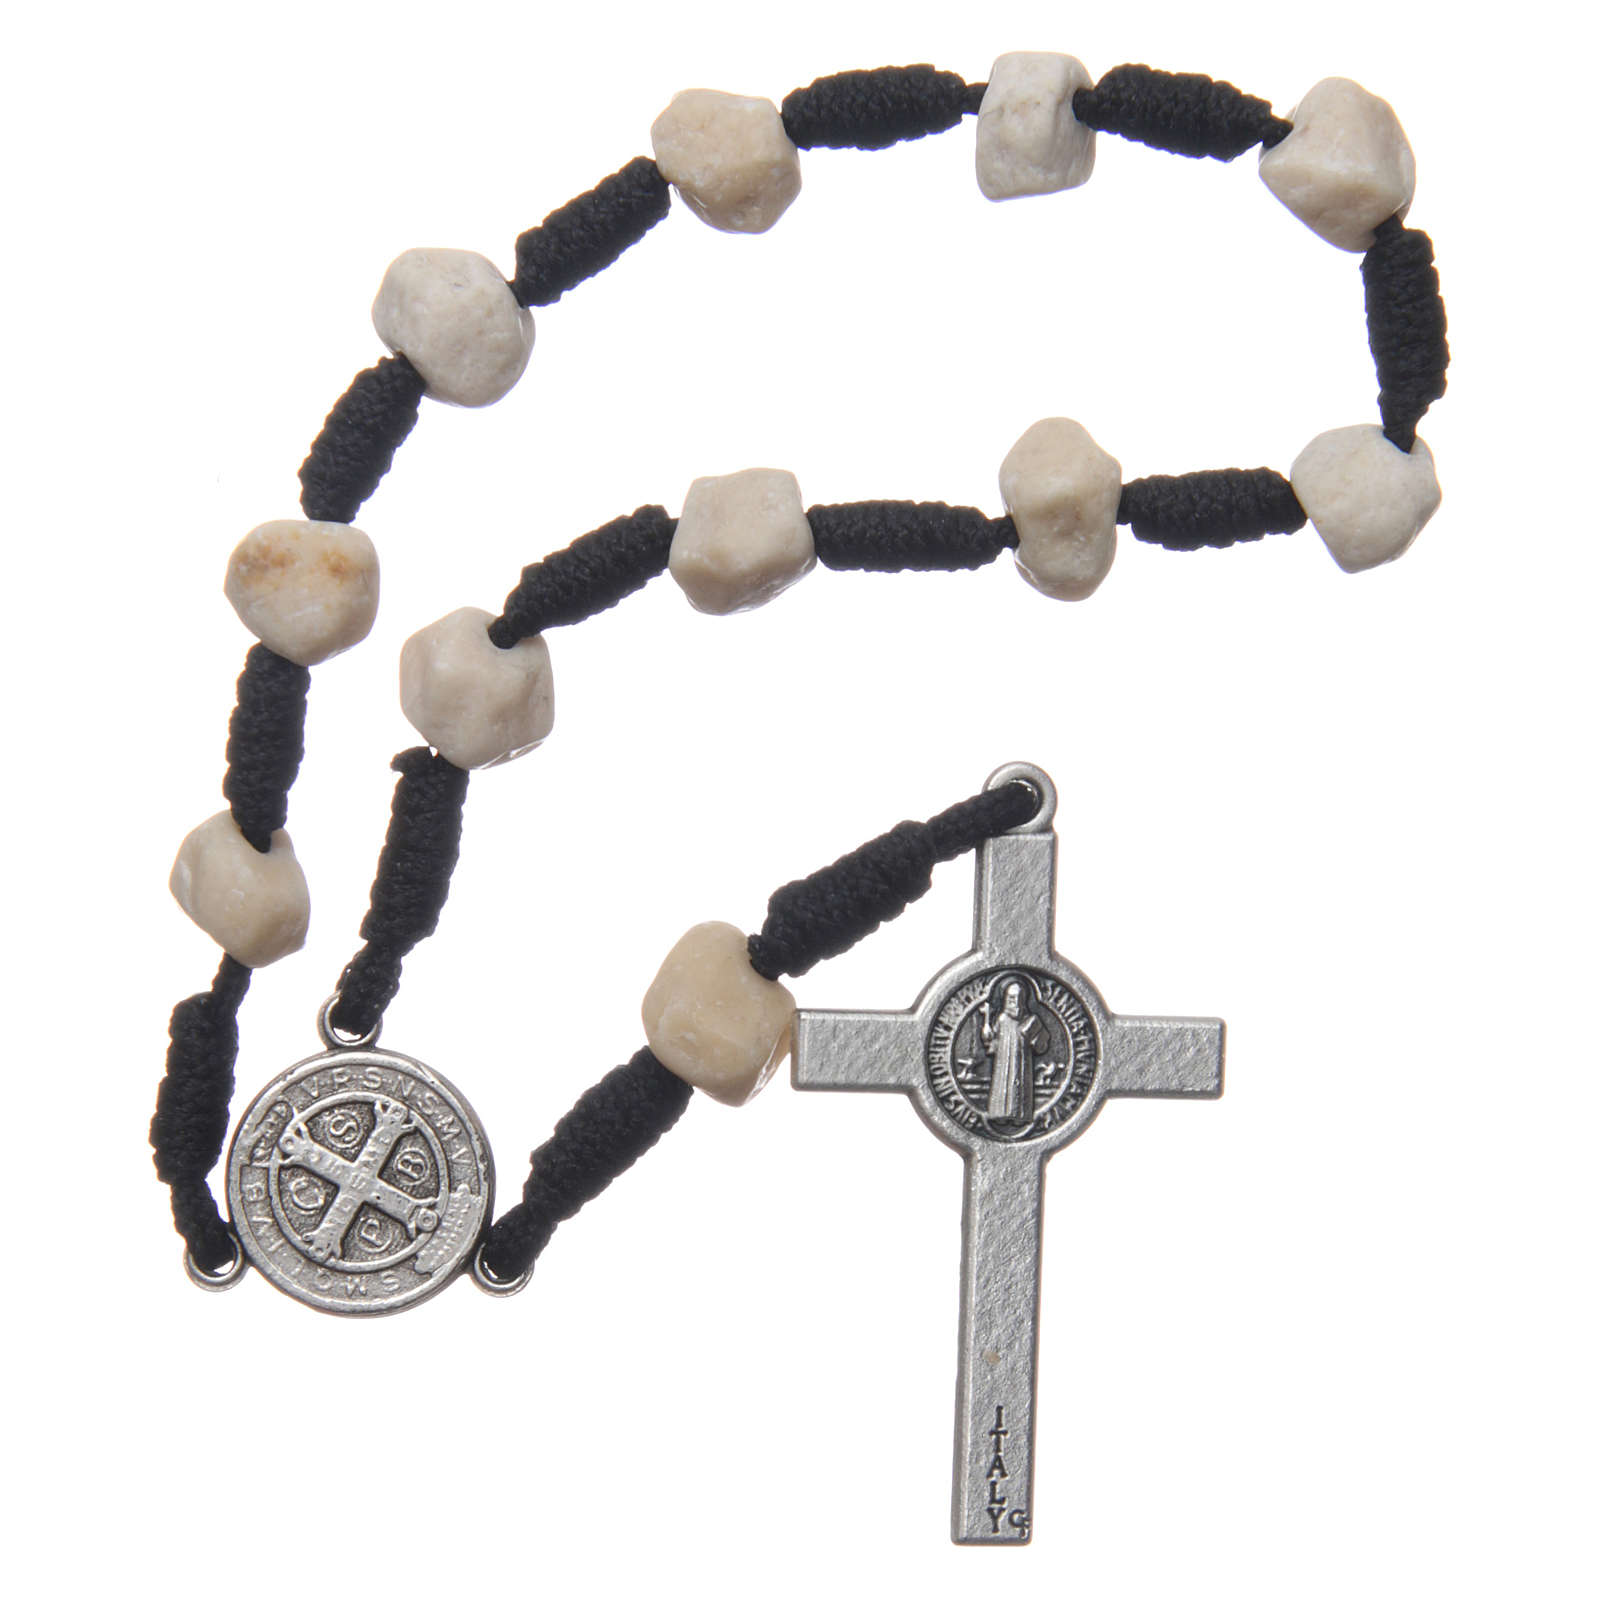 Medjugorje single decade bracelet with stone grains and Saint Benedict crucifix 4